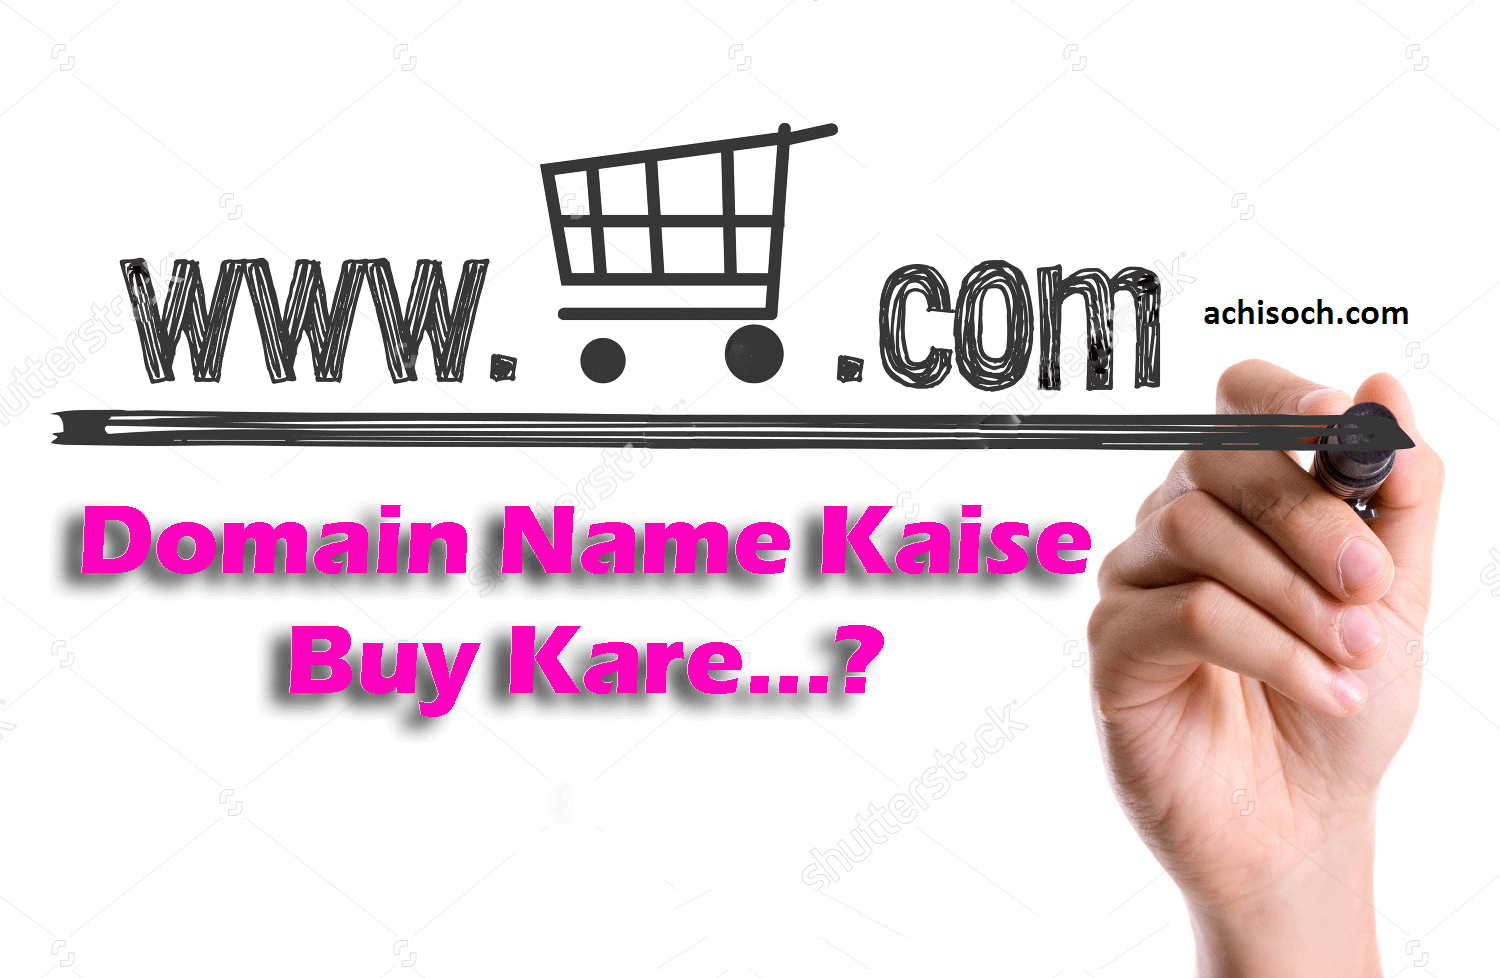 Godaddy Se Domain Kaise Purchase Kare Kharide